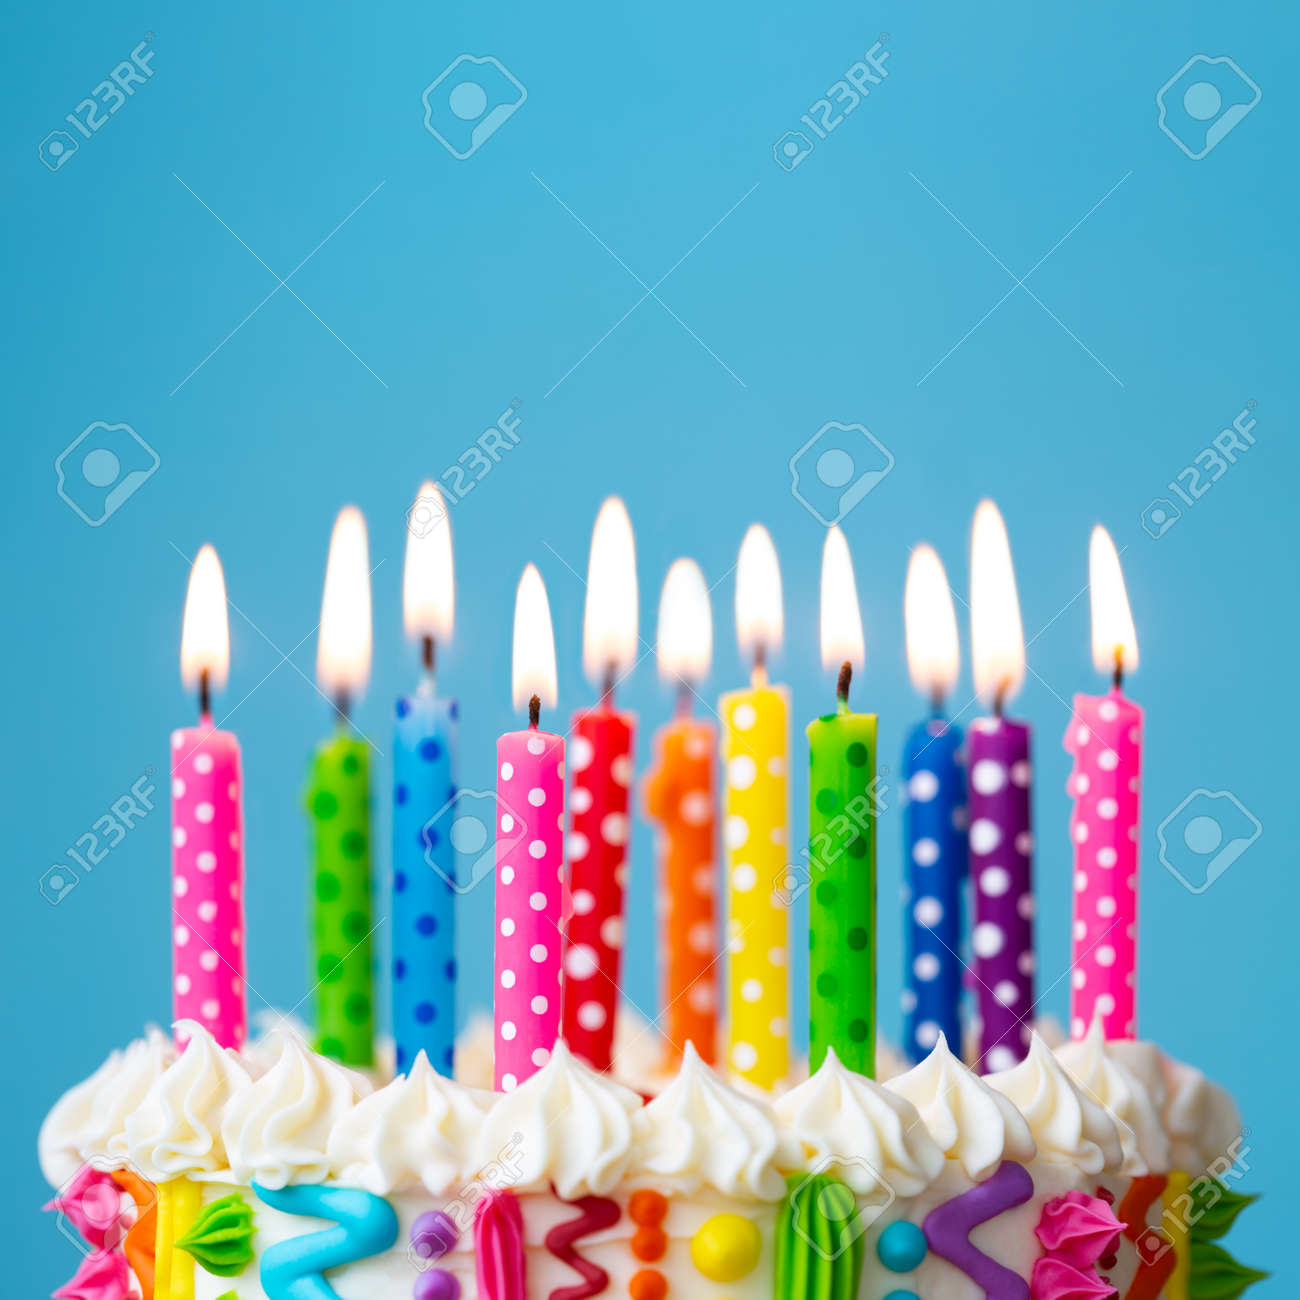 Colorful birthday cake with rainbow colored candles - 169034812